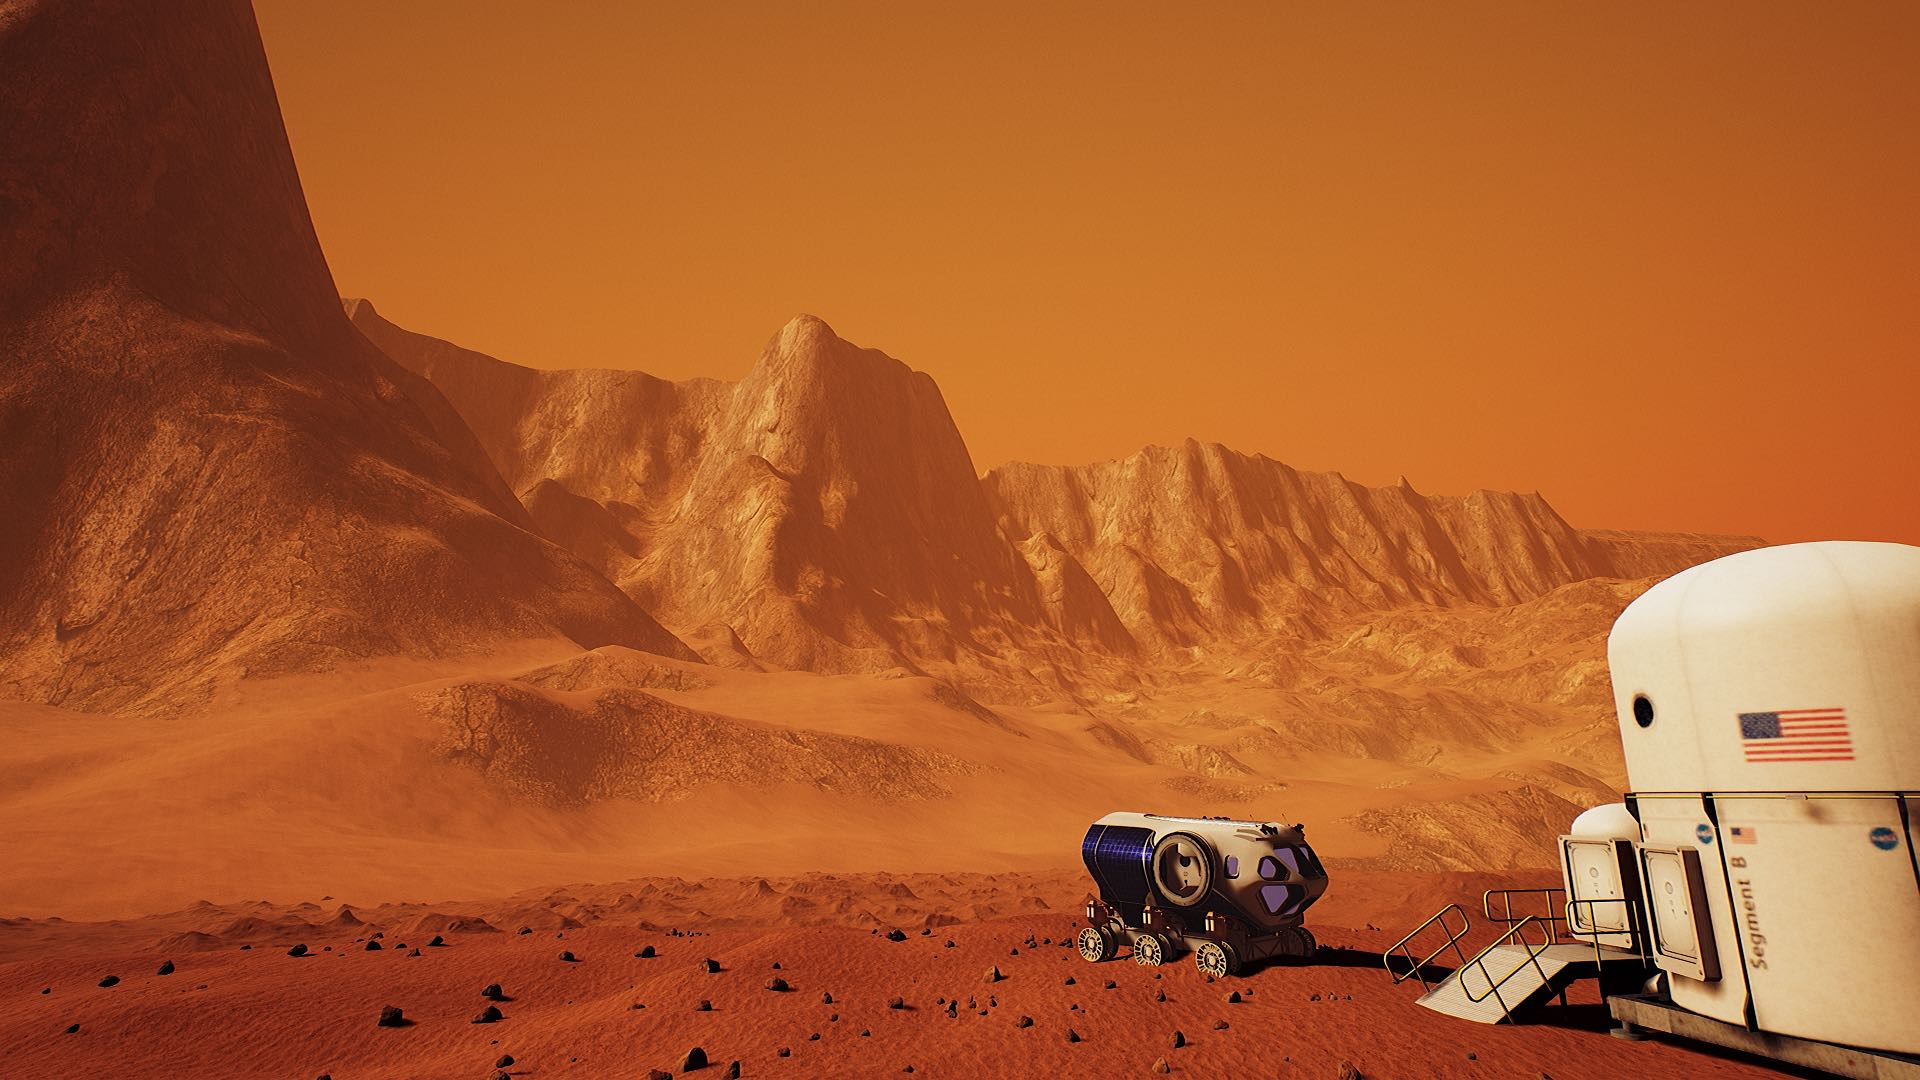 NASA is Creating a VR Mars Mission, 'Mars 2030 Experience'